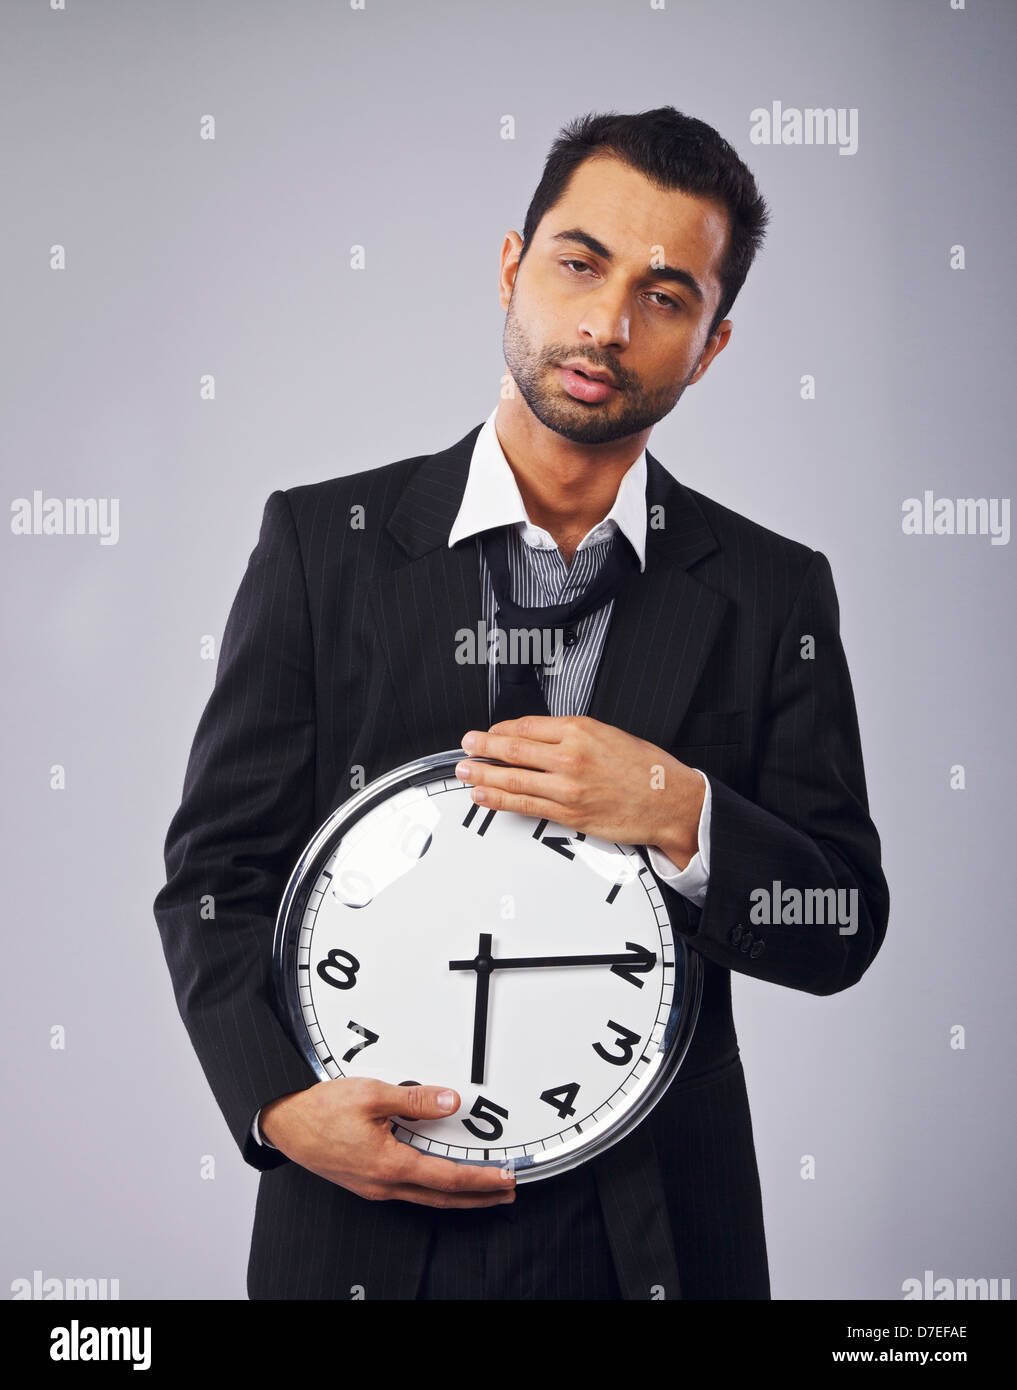 Sleepy office worker holding a clock - Stock Image